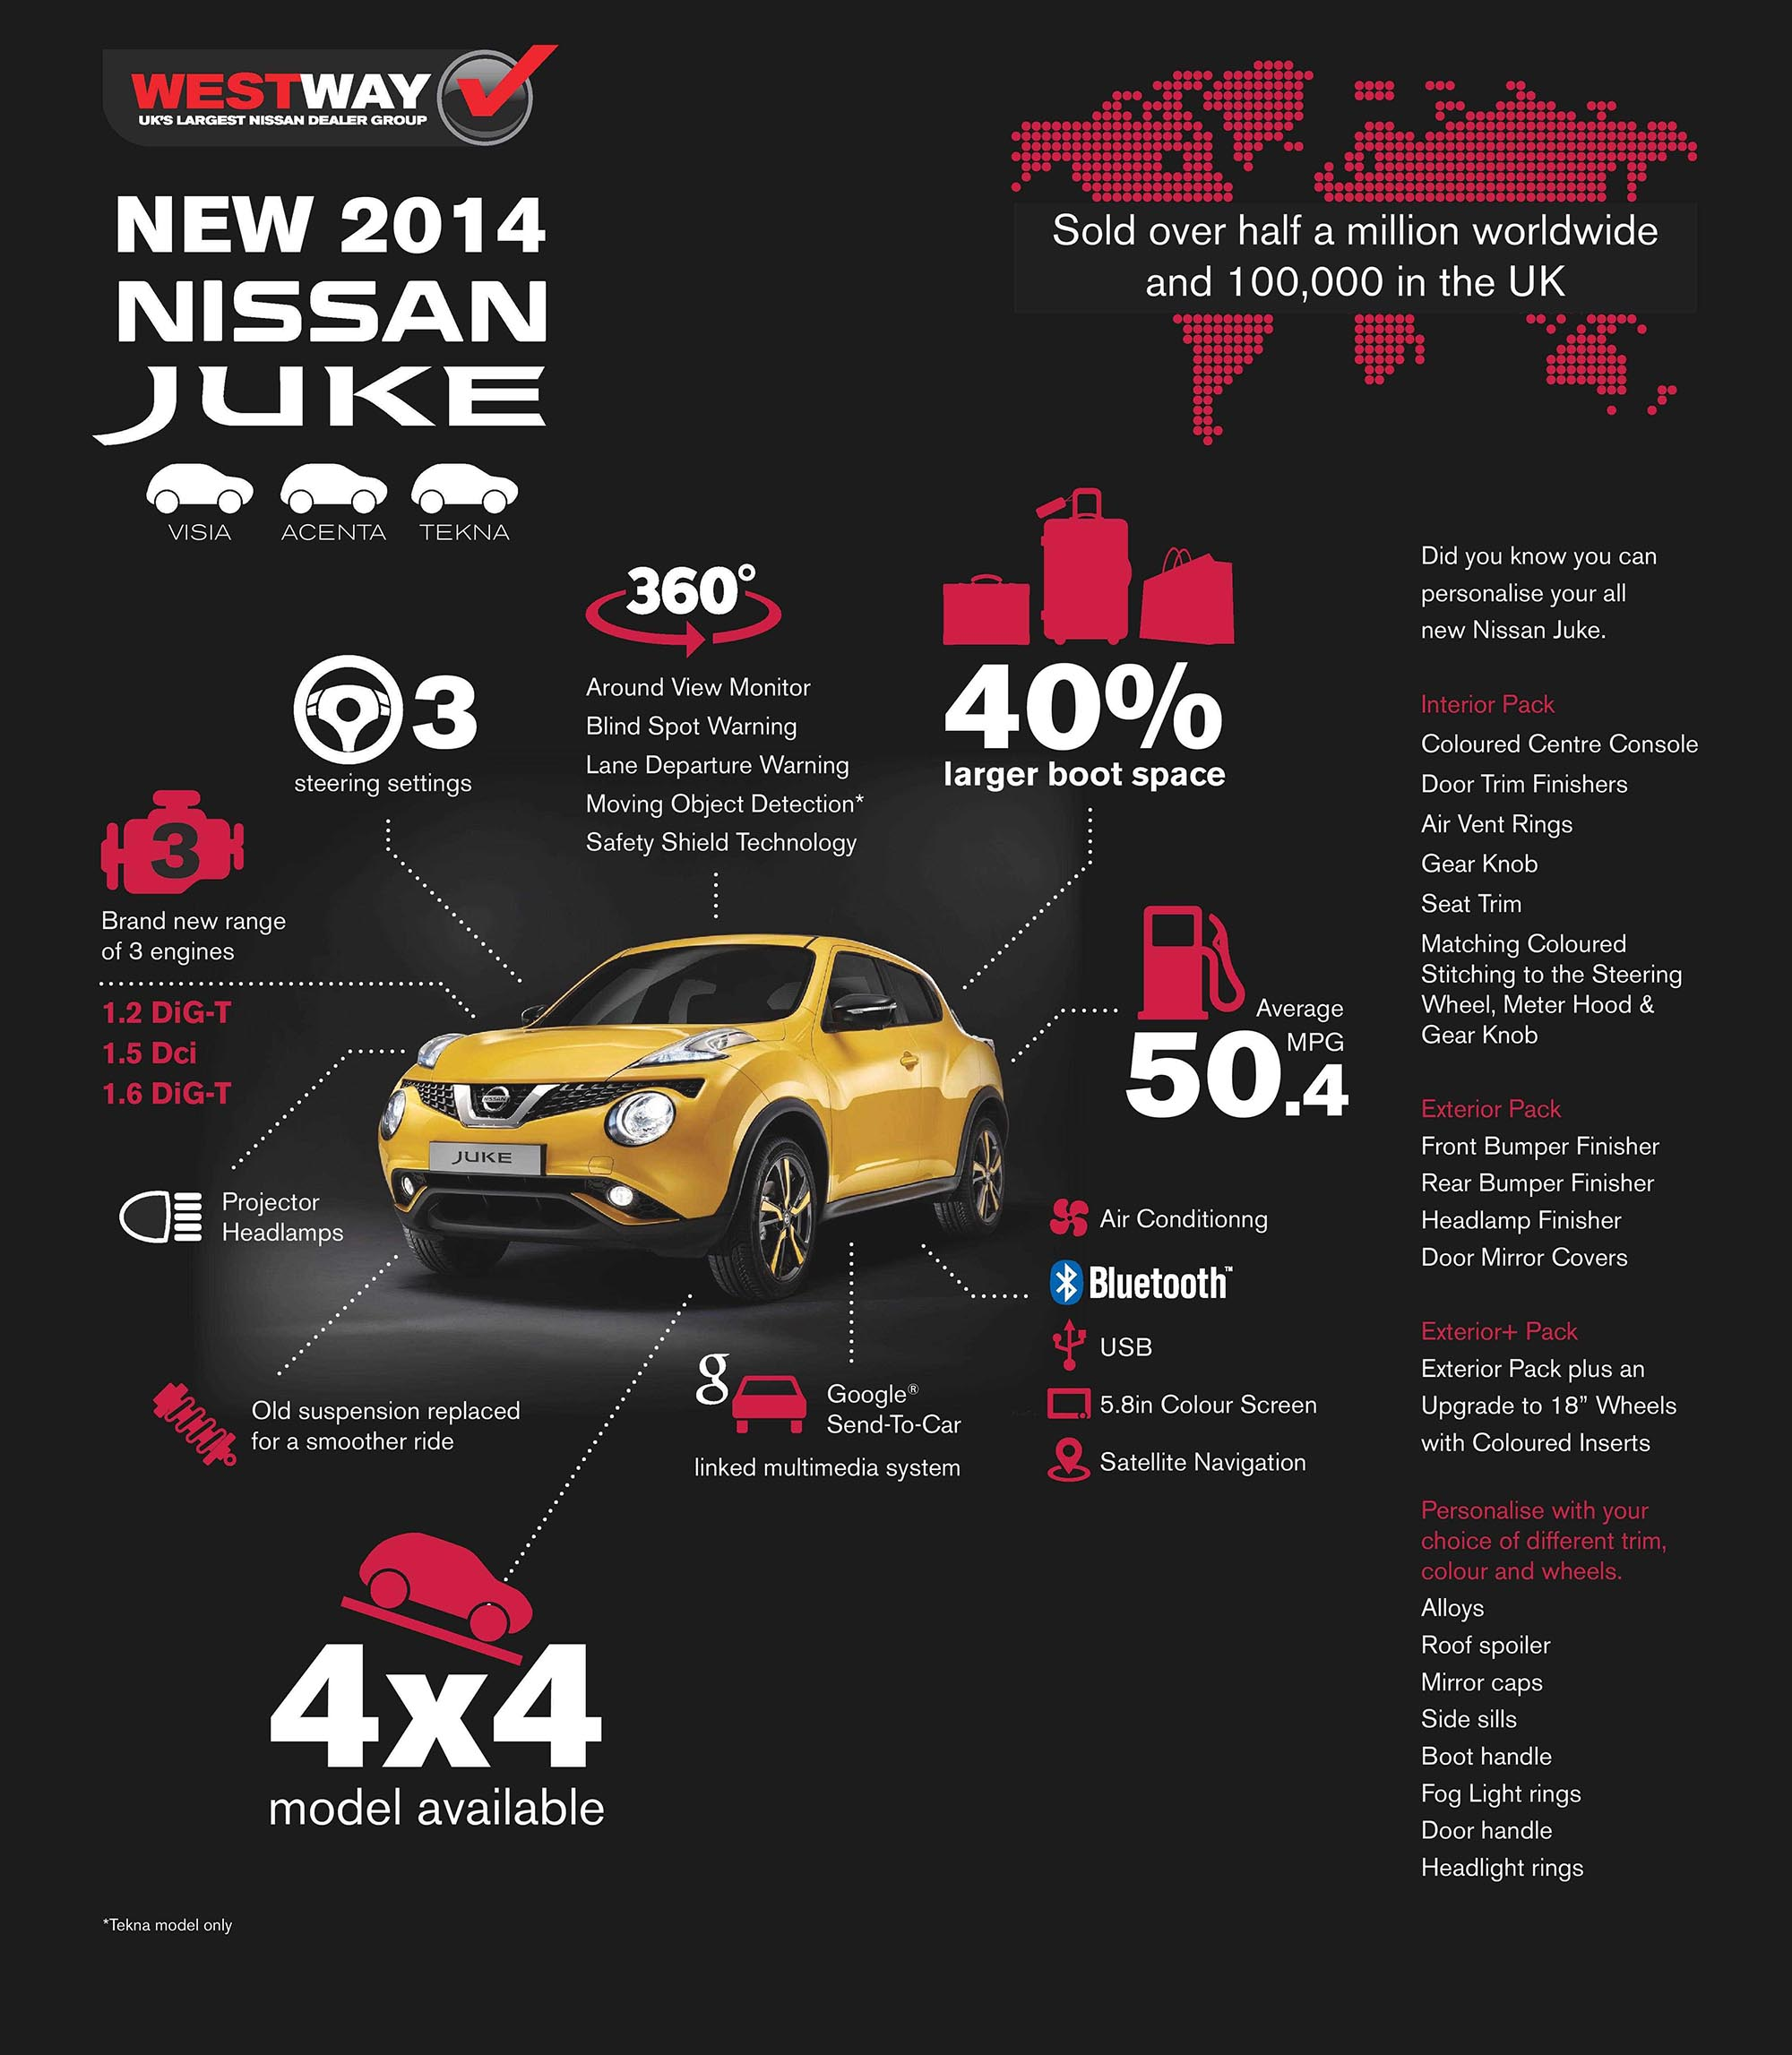 What's New on the 2014 Juke?